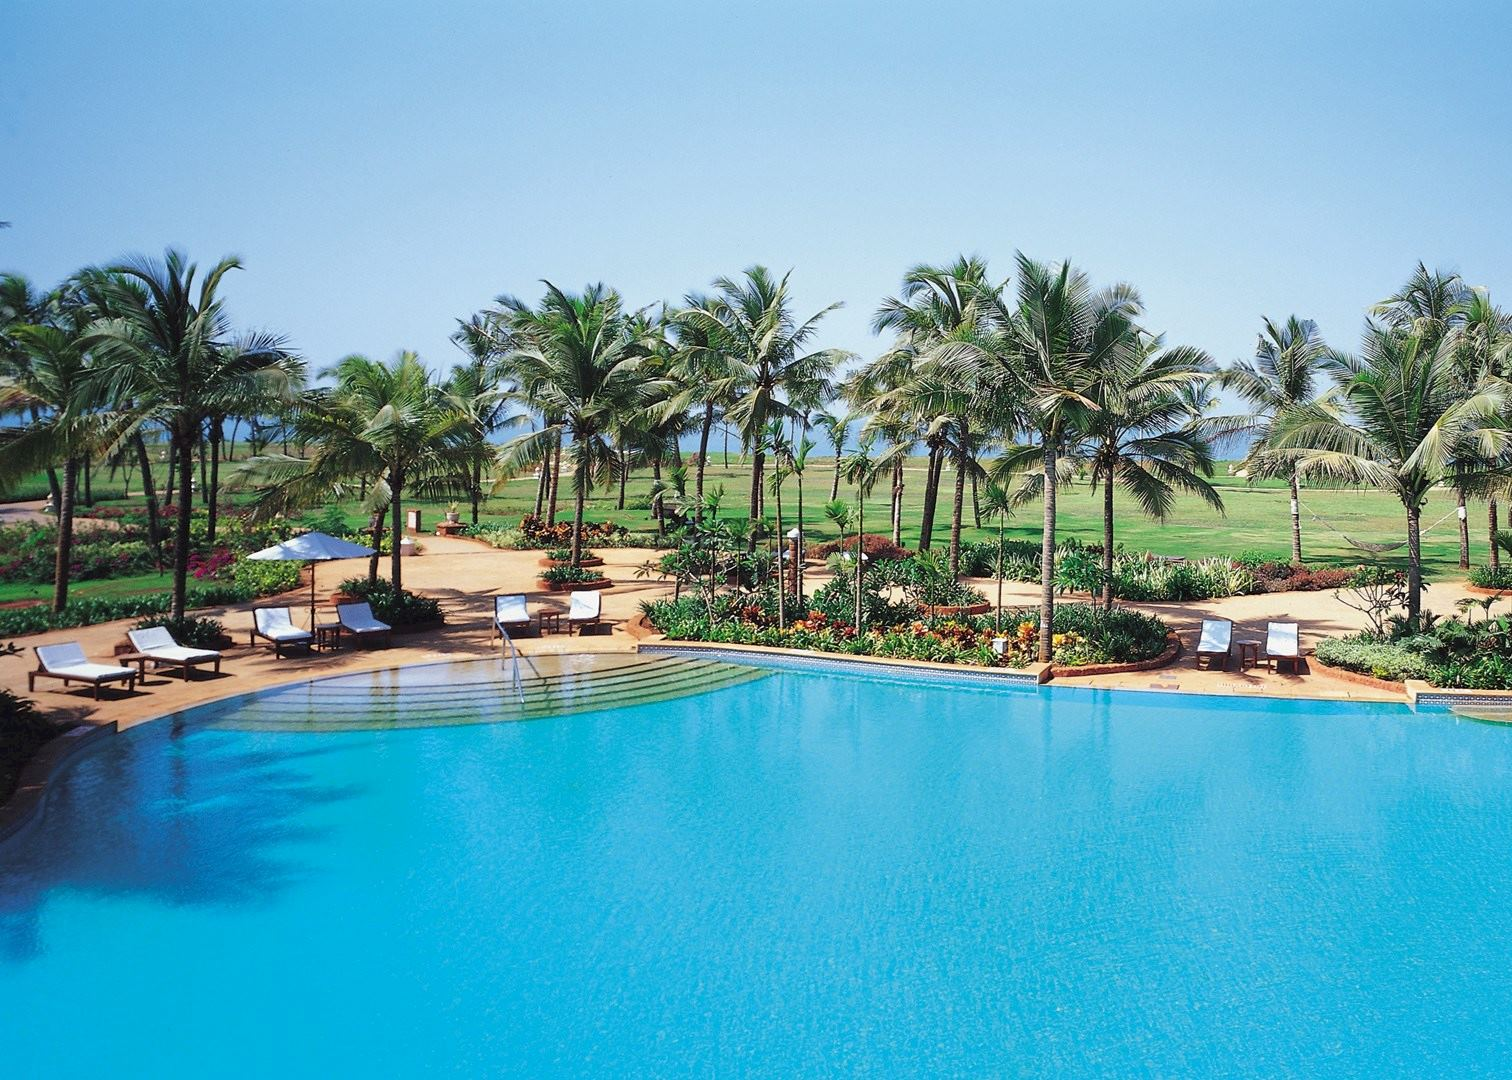 Taj exotica hotels in goa audley travel for Resorts in goa with private swimming pool